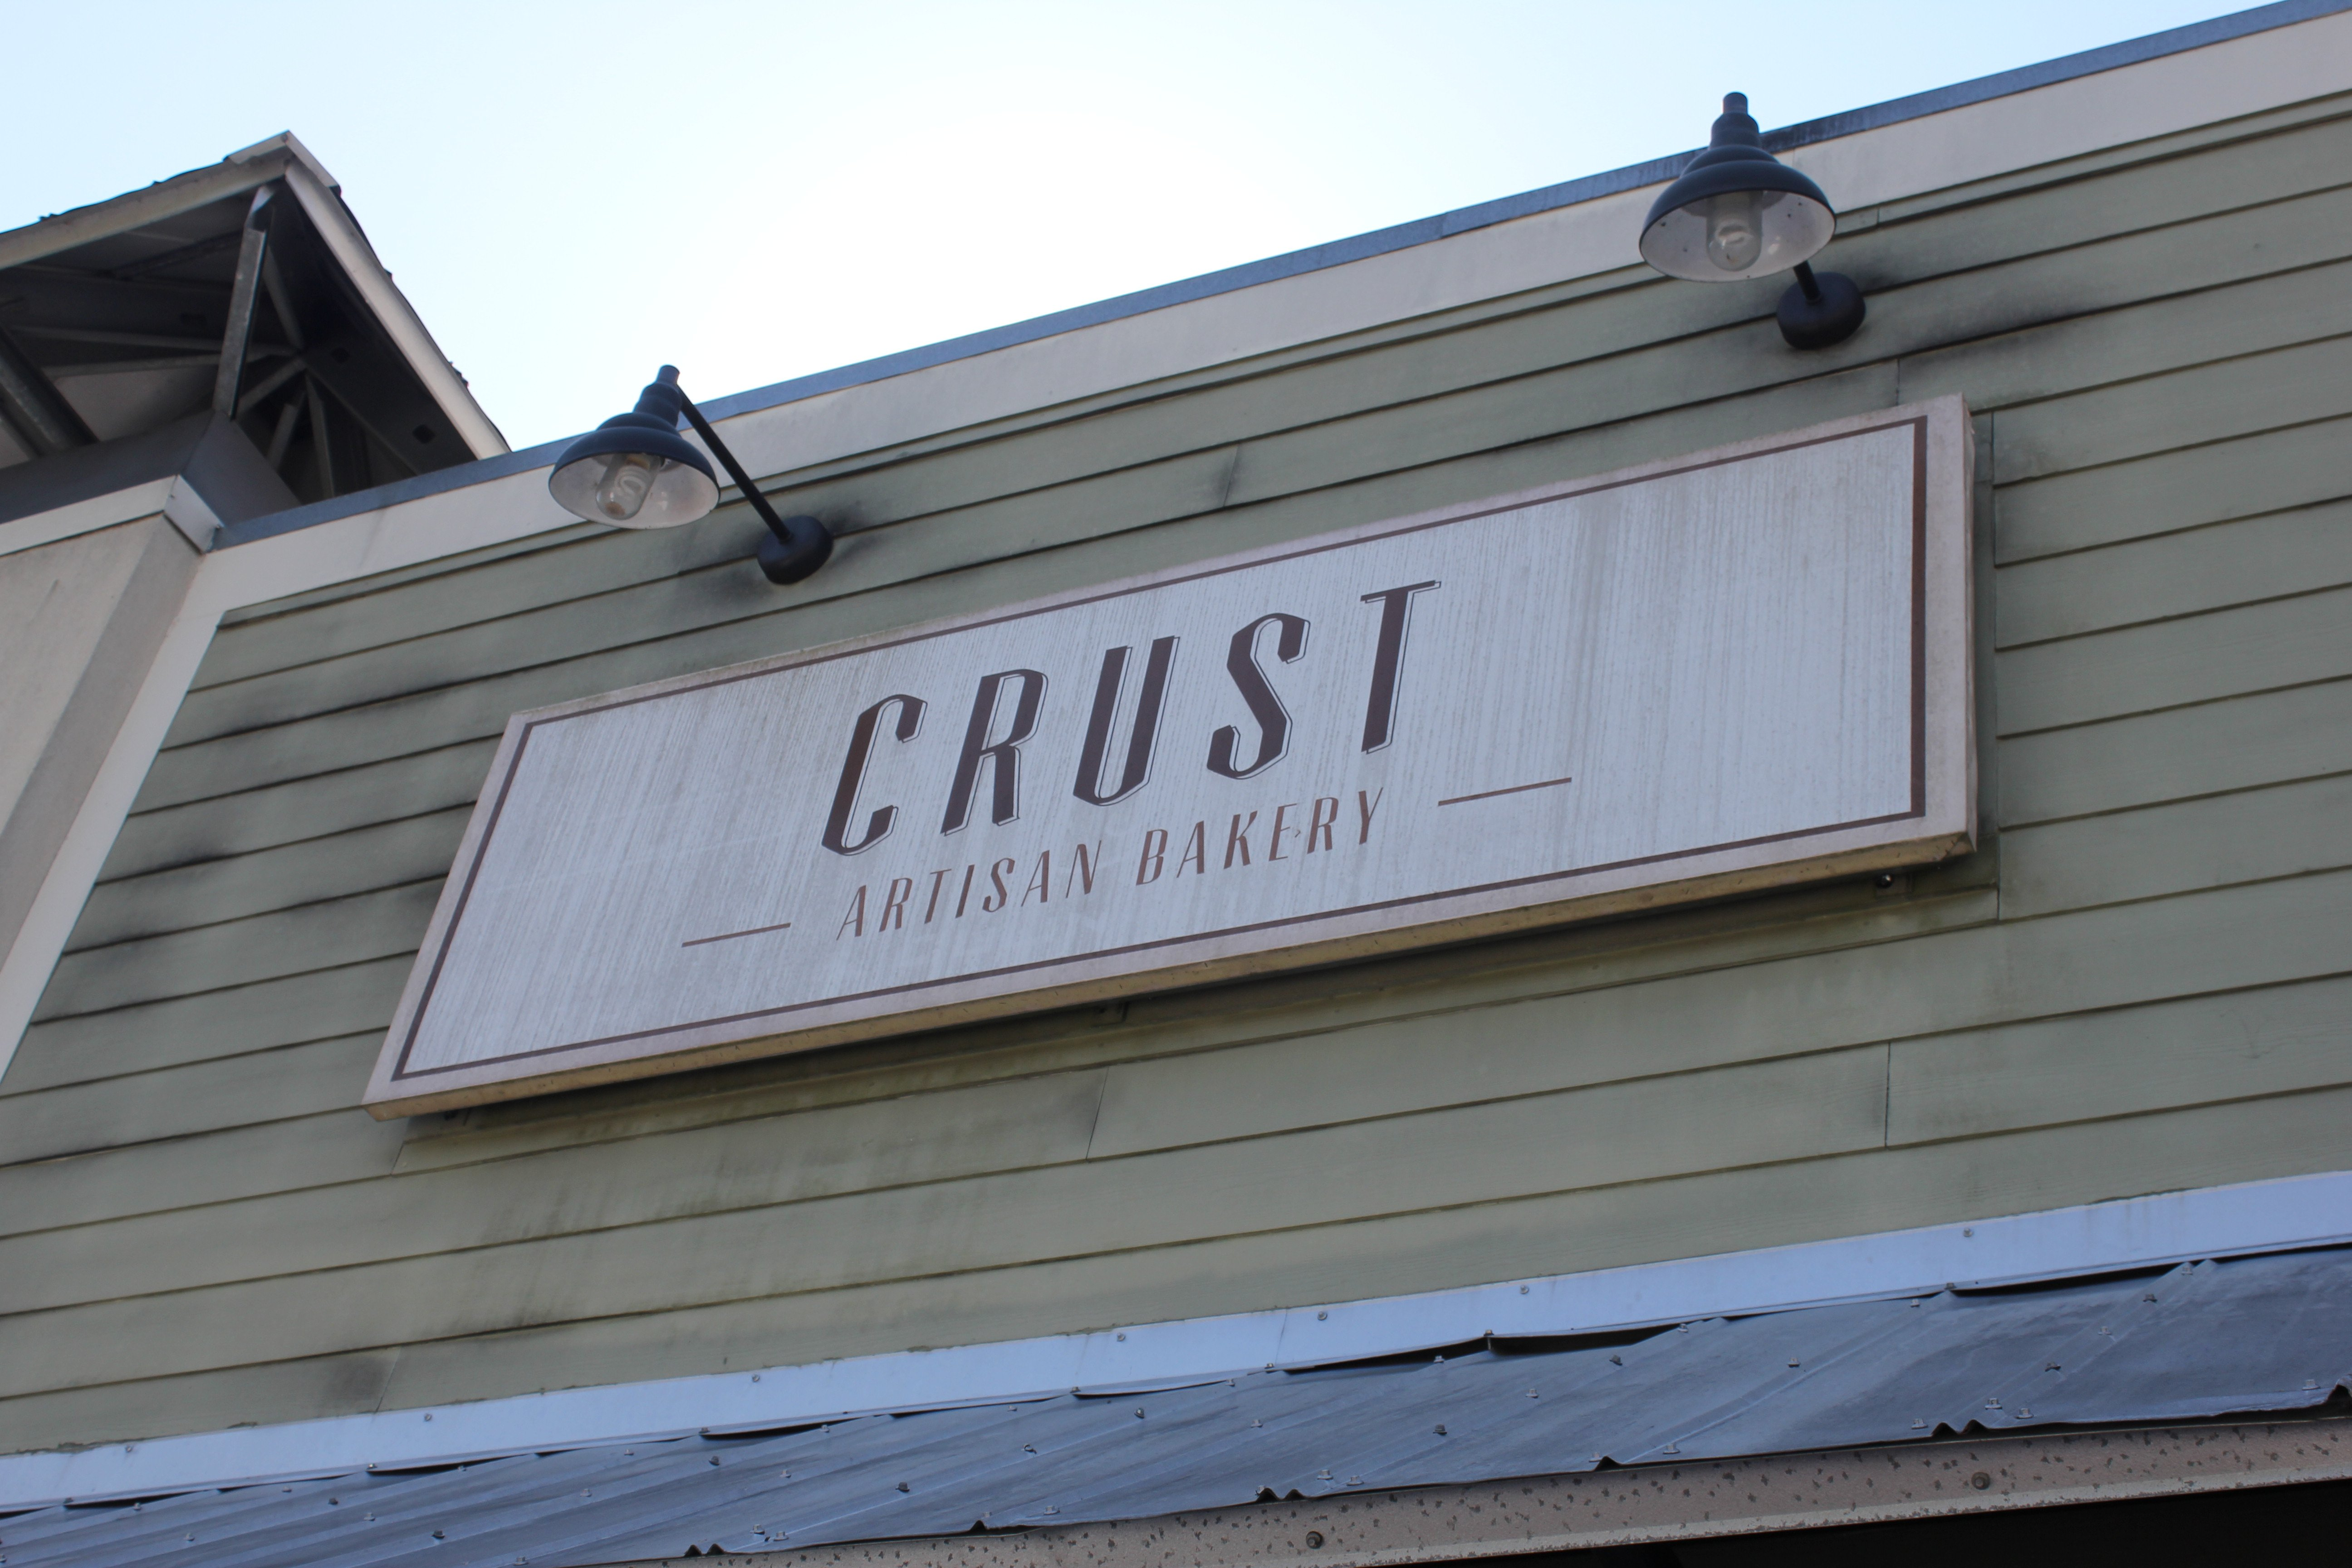 Crust artisan bakery 30a food and wine for Craft store santa rosa